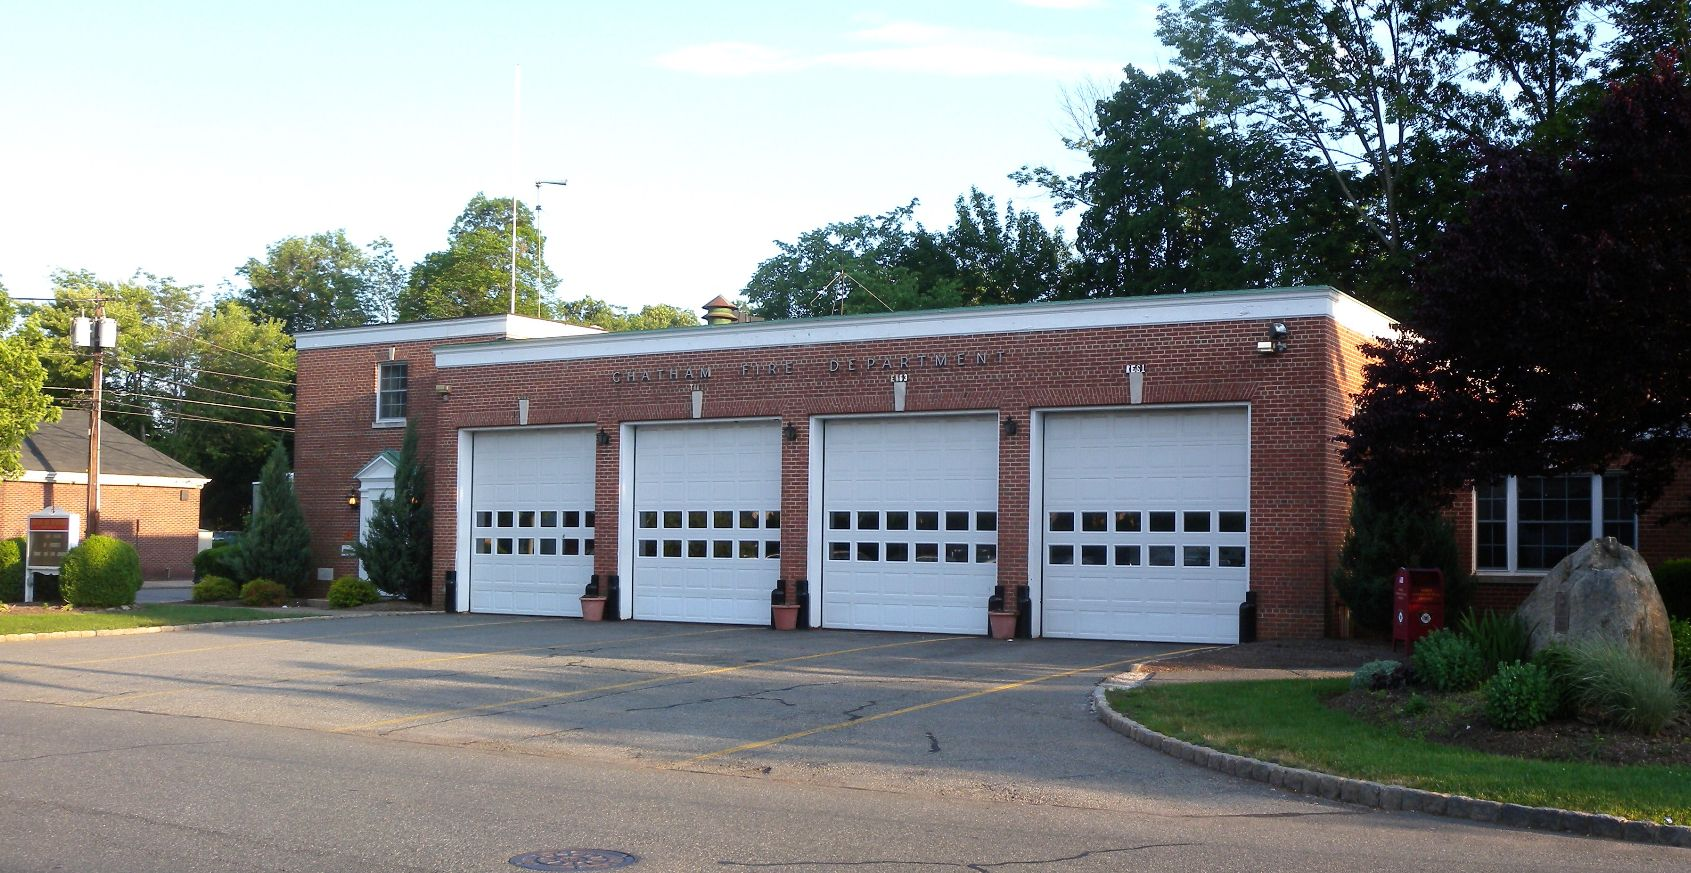 Chatham Fire Department. Source